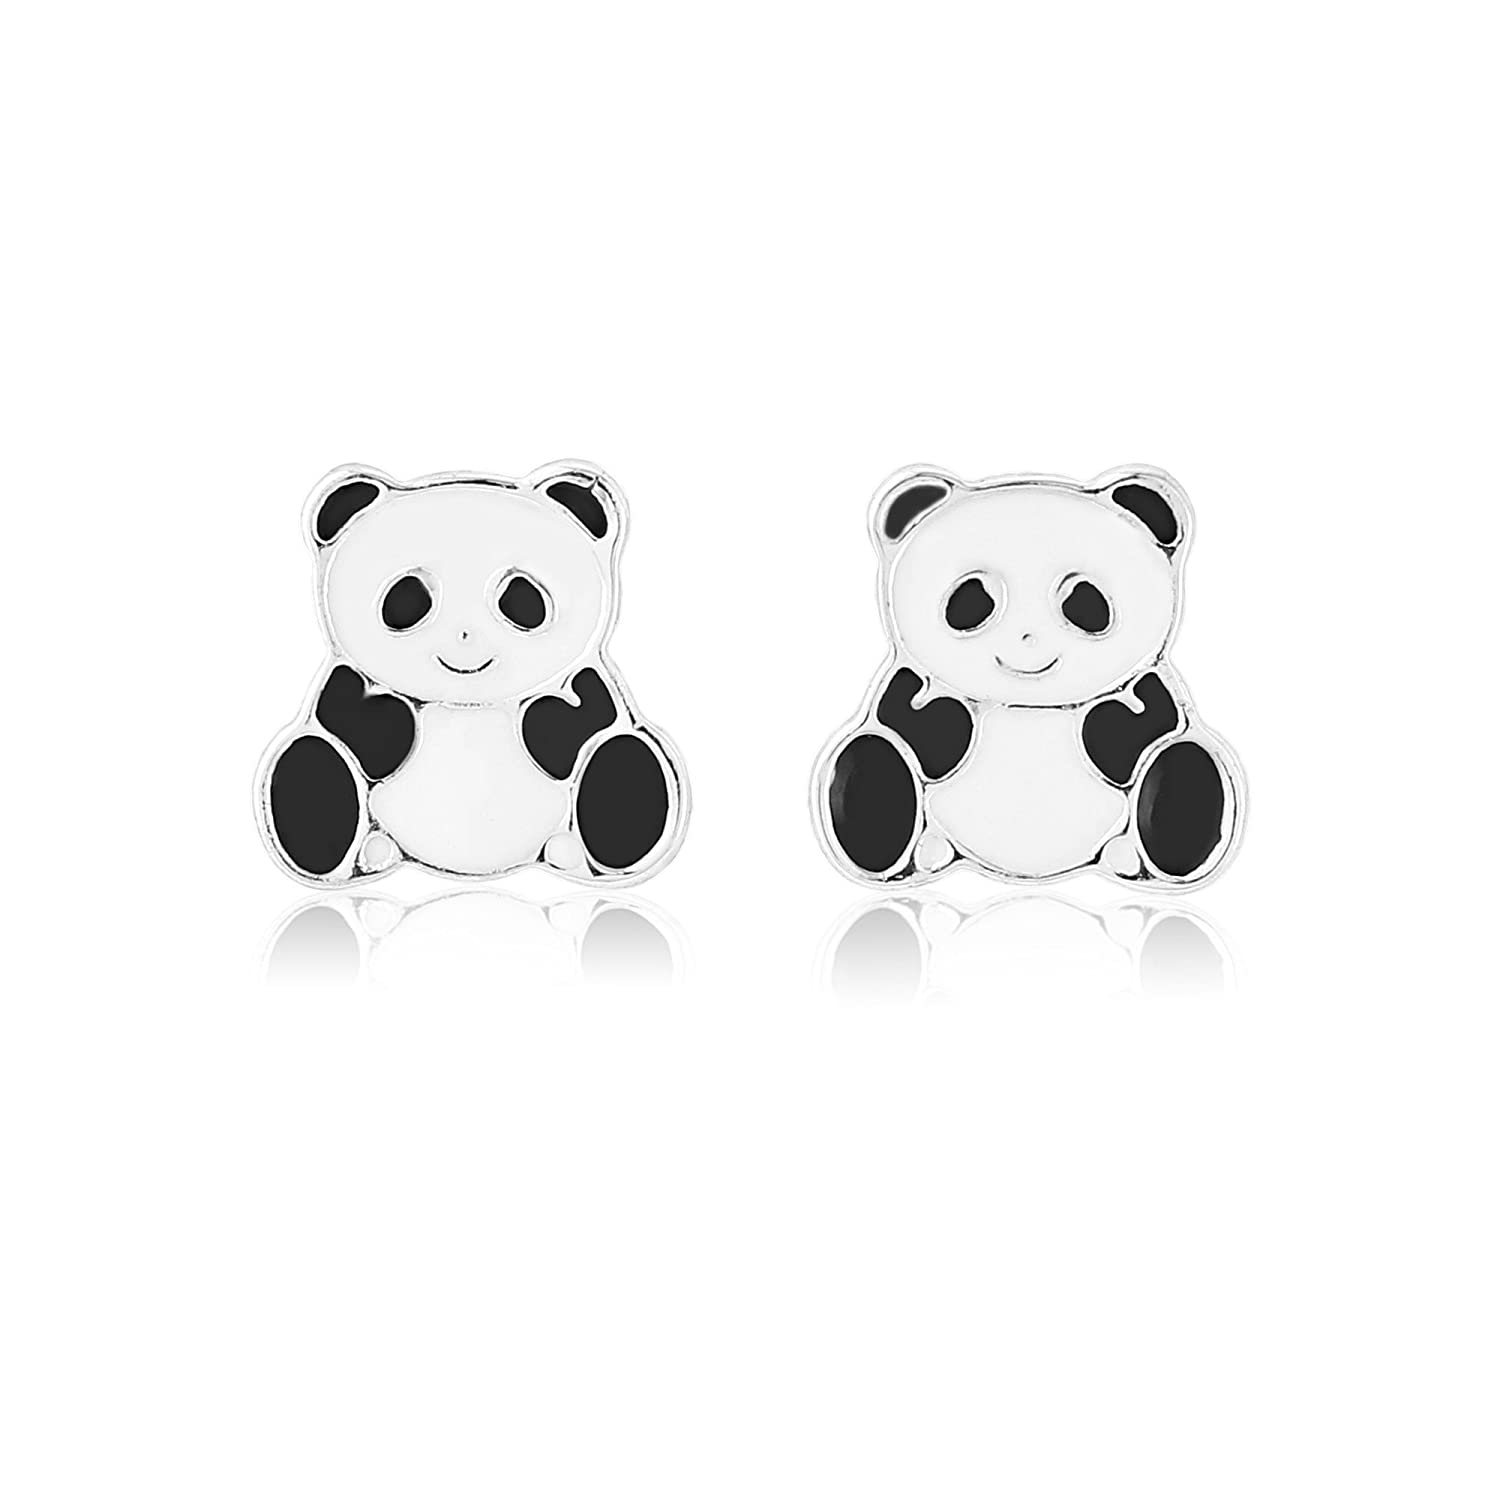 Panda earrings for girls with pierced ears includes t bag